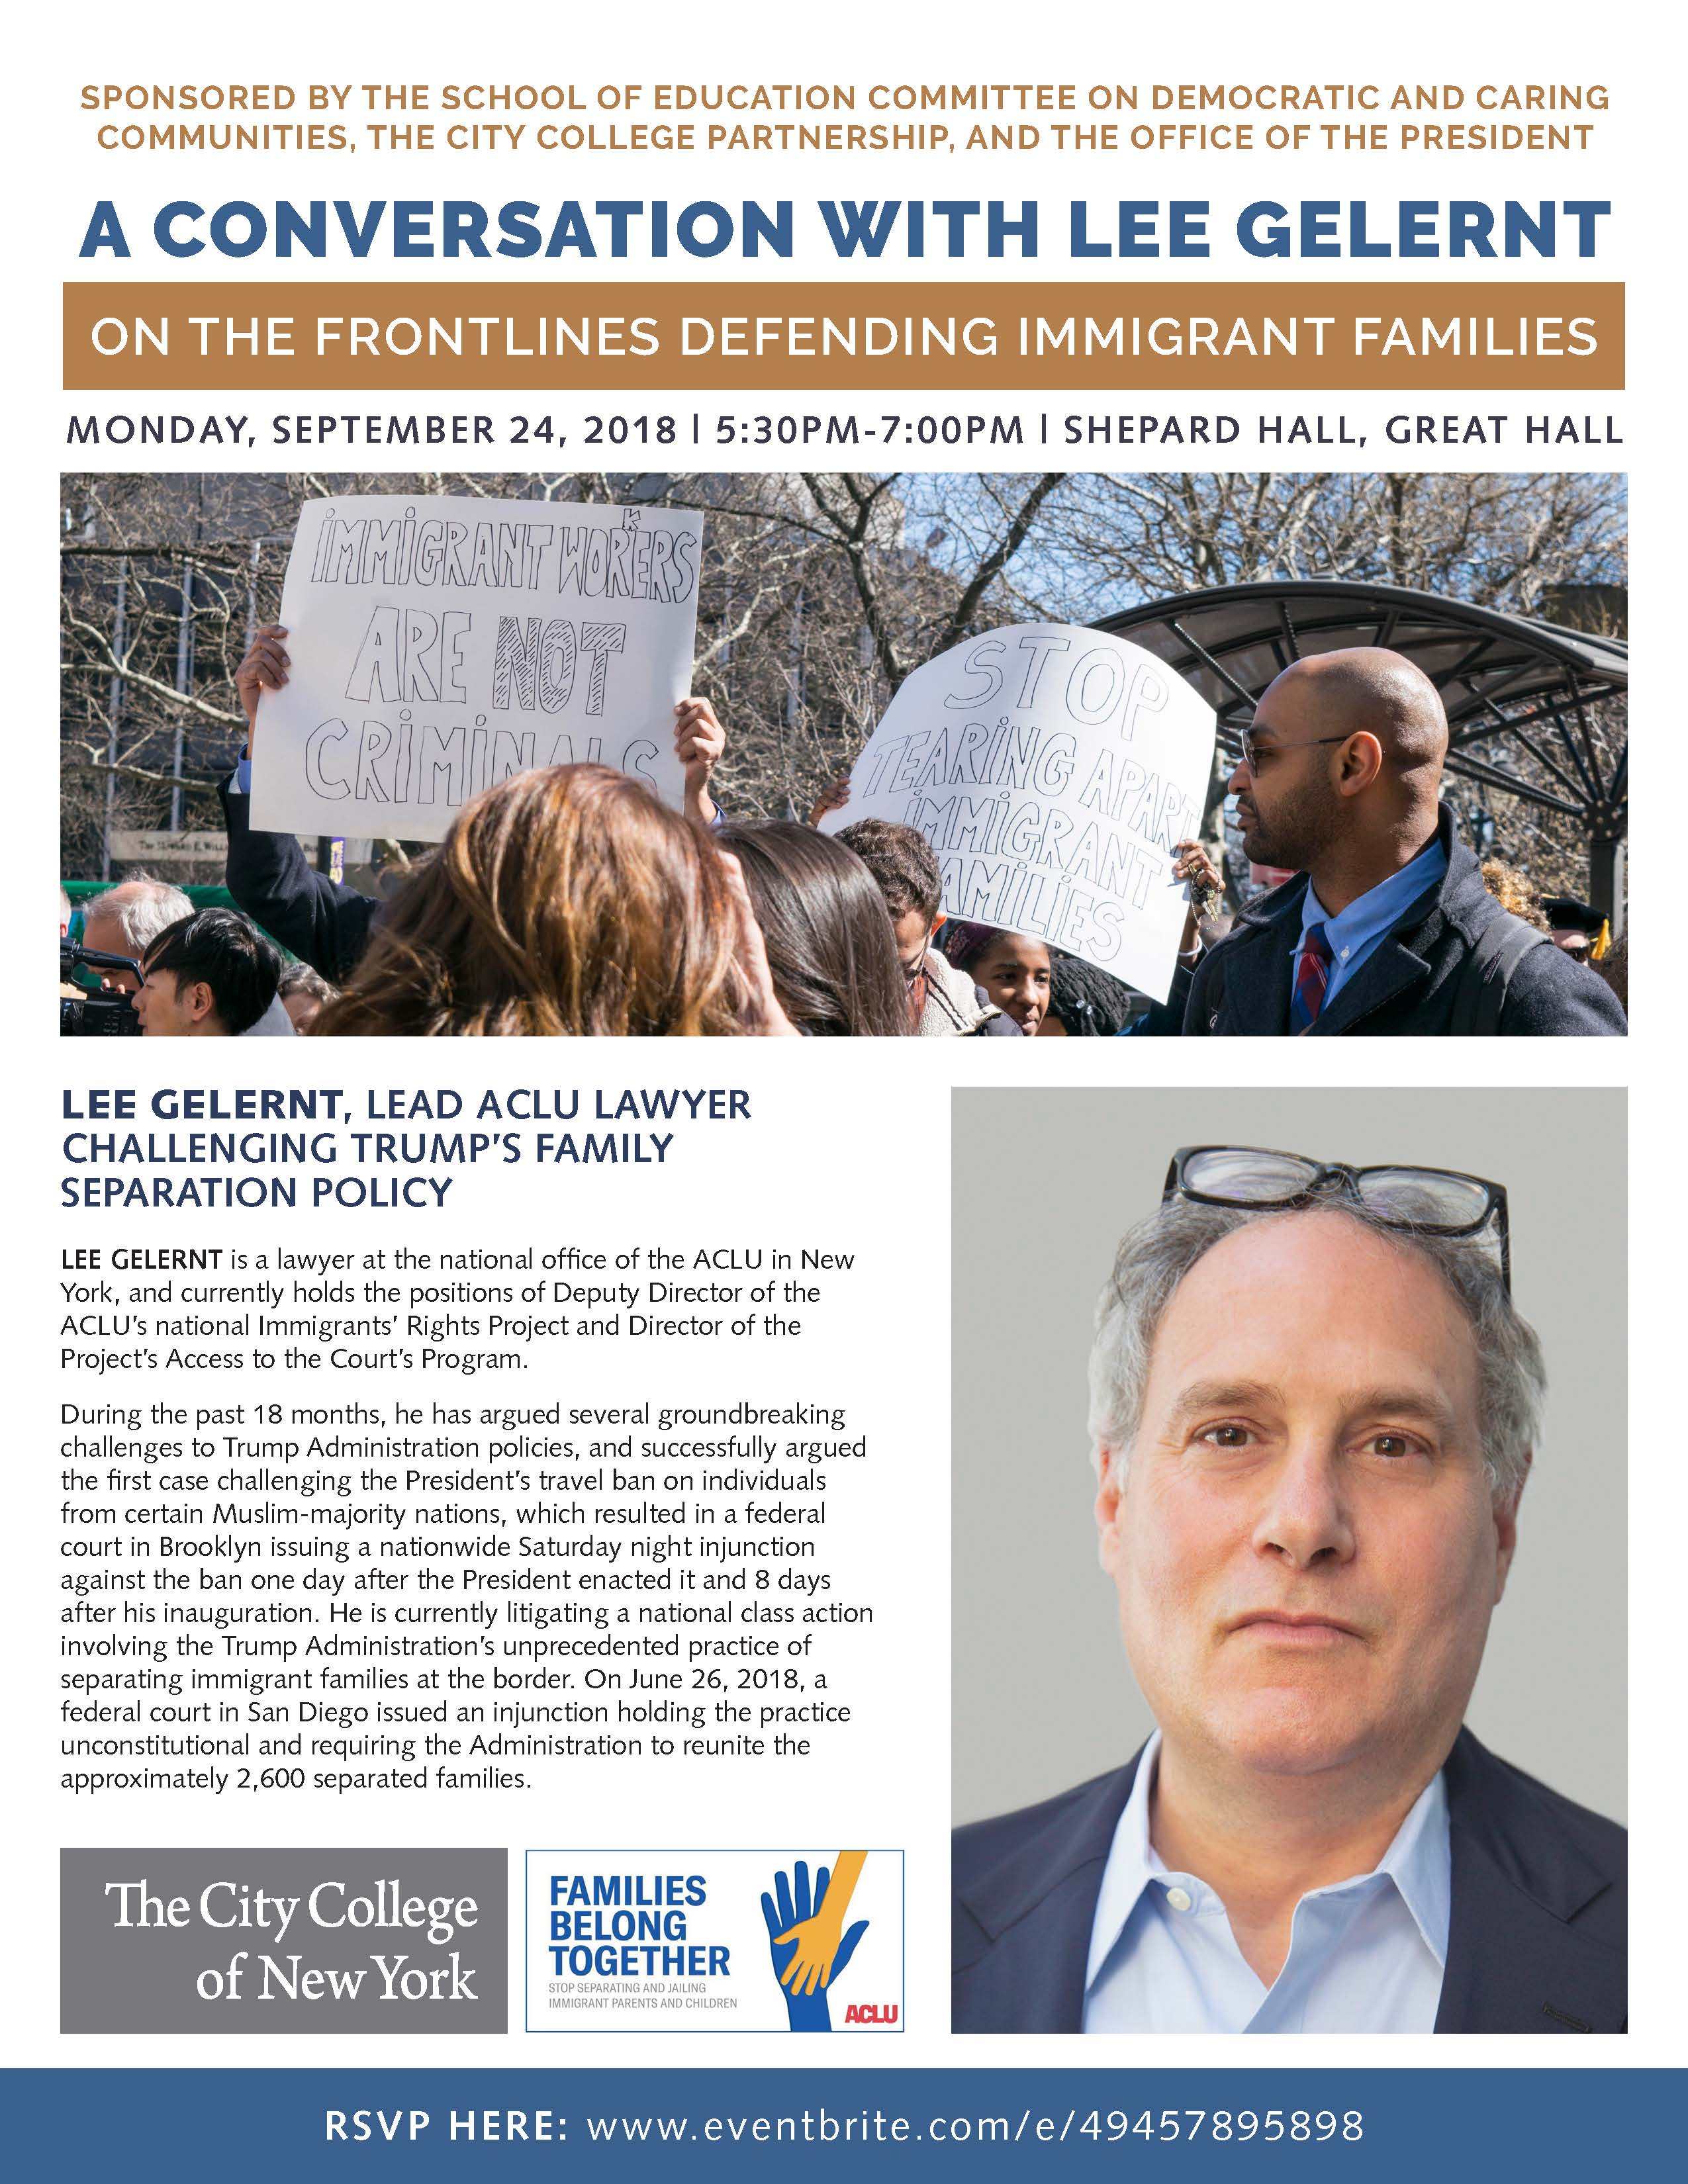 LEE GELERNT, LEAD ACLU LAWYER CHALLENGING TRUMP'S FAMILY SEPARATION POLICY PROMOTION